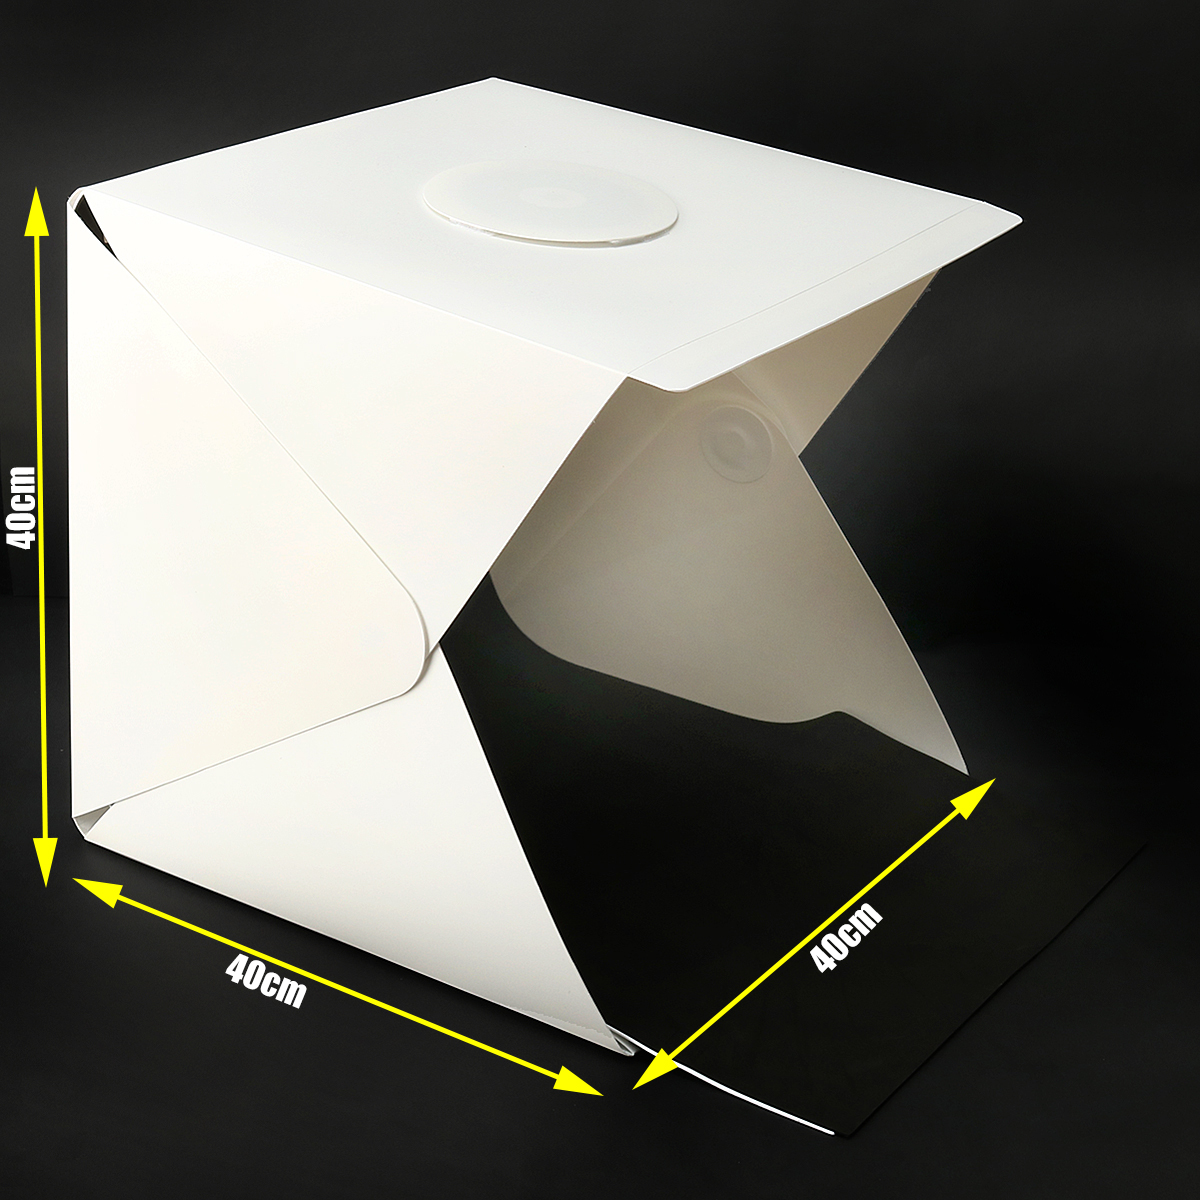 40CM Photo Studio Photography Light Room Tent Kit Backdrop Cube Box